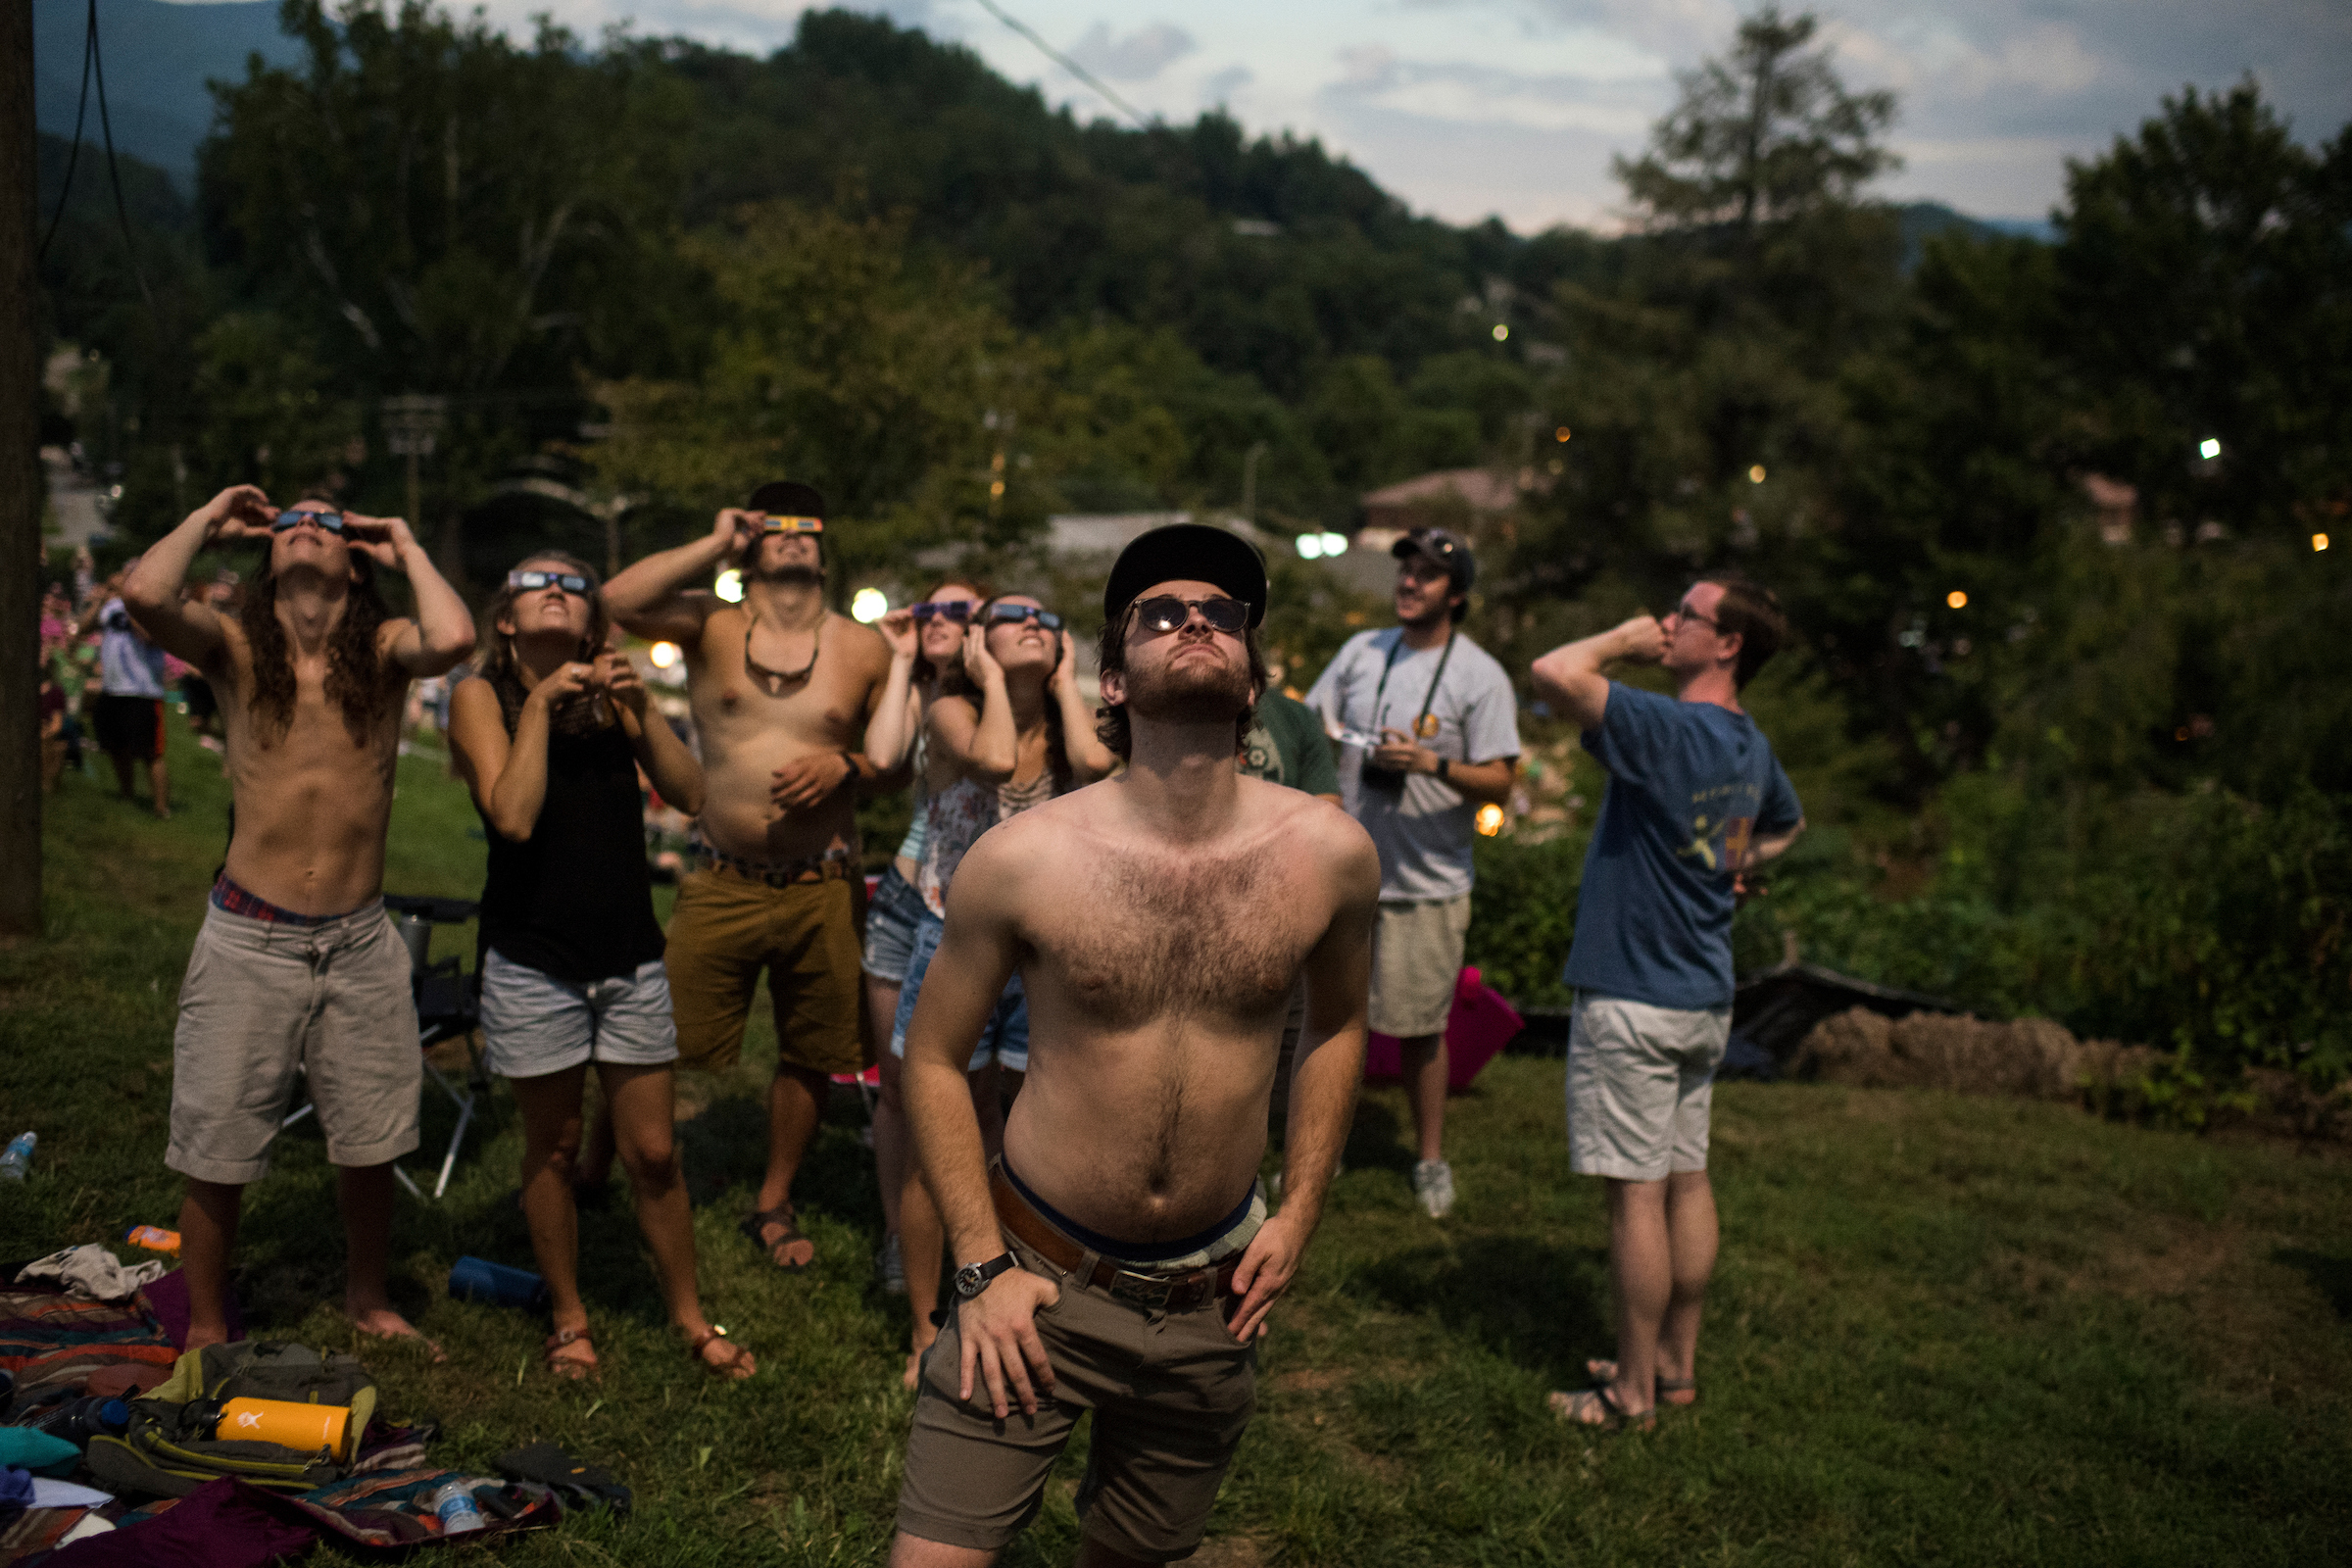 UNITED STATES - AUGUST 21: Spectators view the solar eclipse in Sylva, N.C. on August 21, 2017. The town lies in the path of totality.(Photo By Tom Williams/CQ Roll Call)